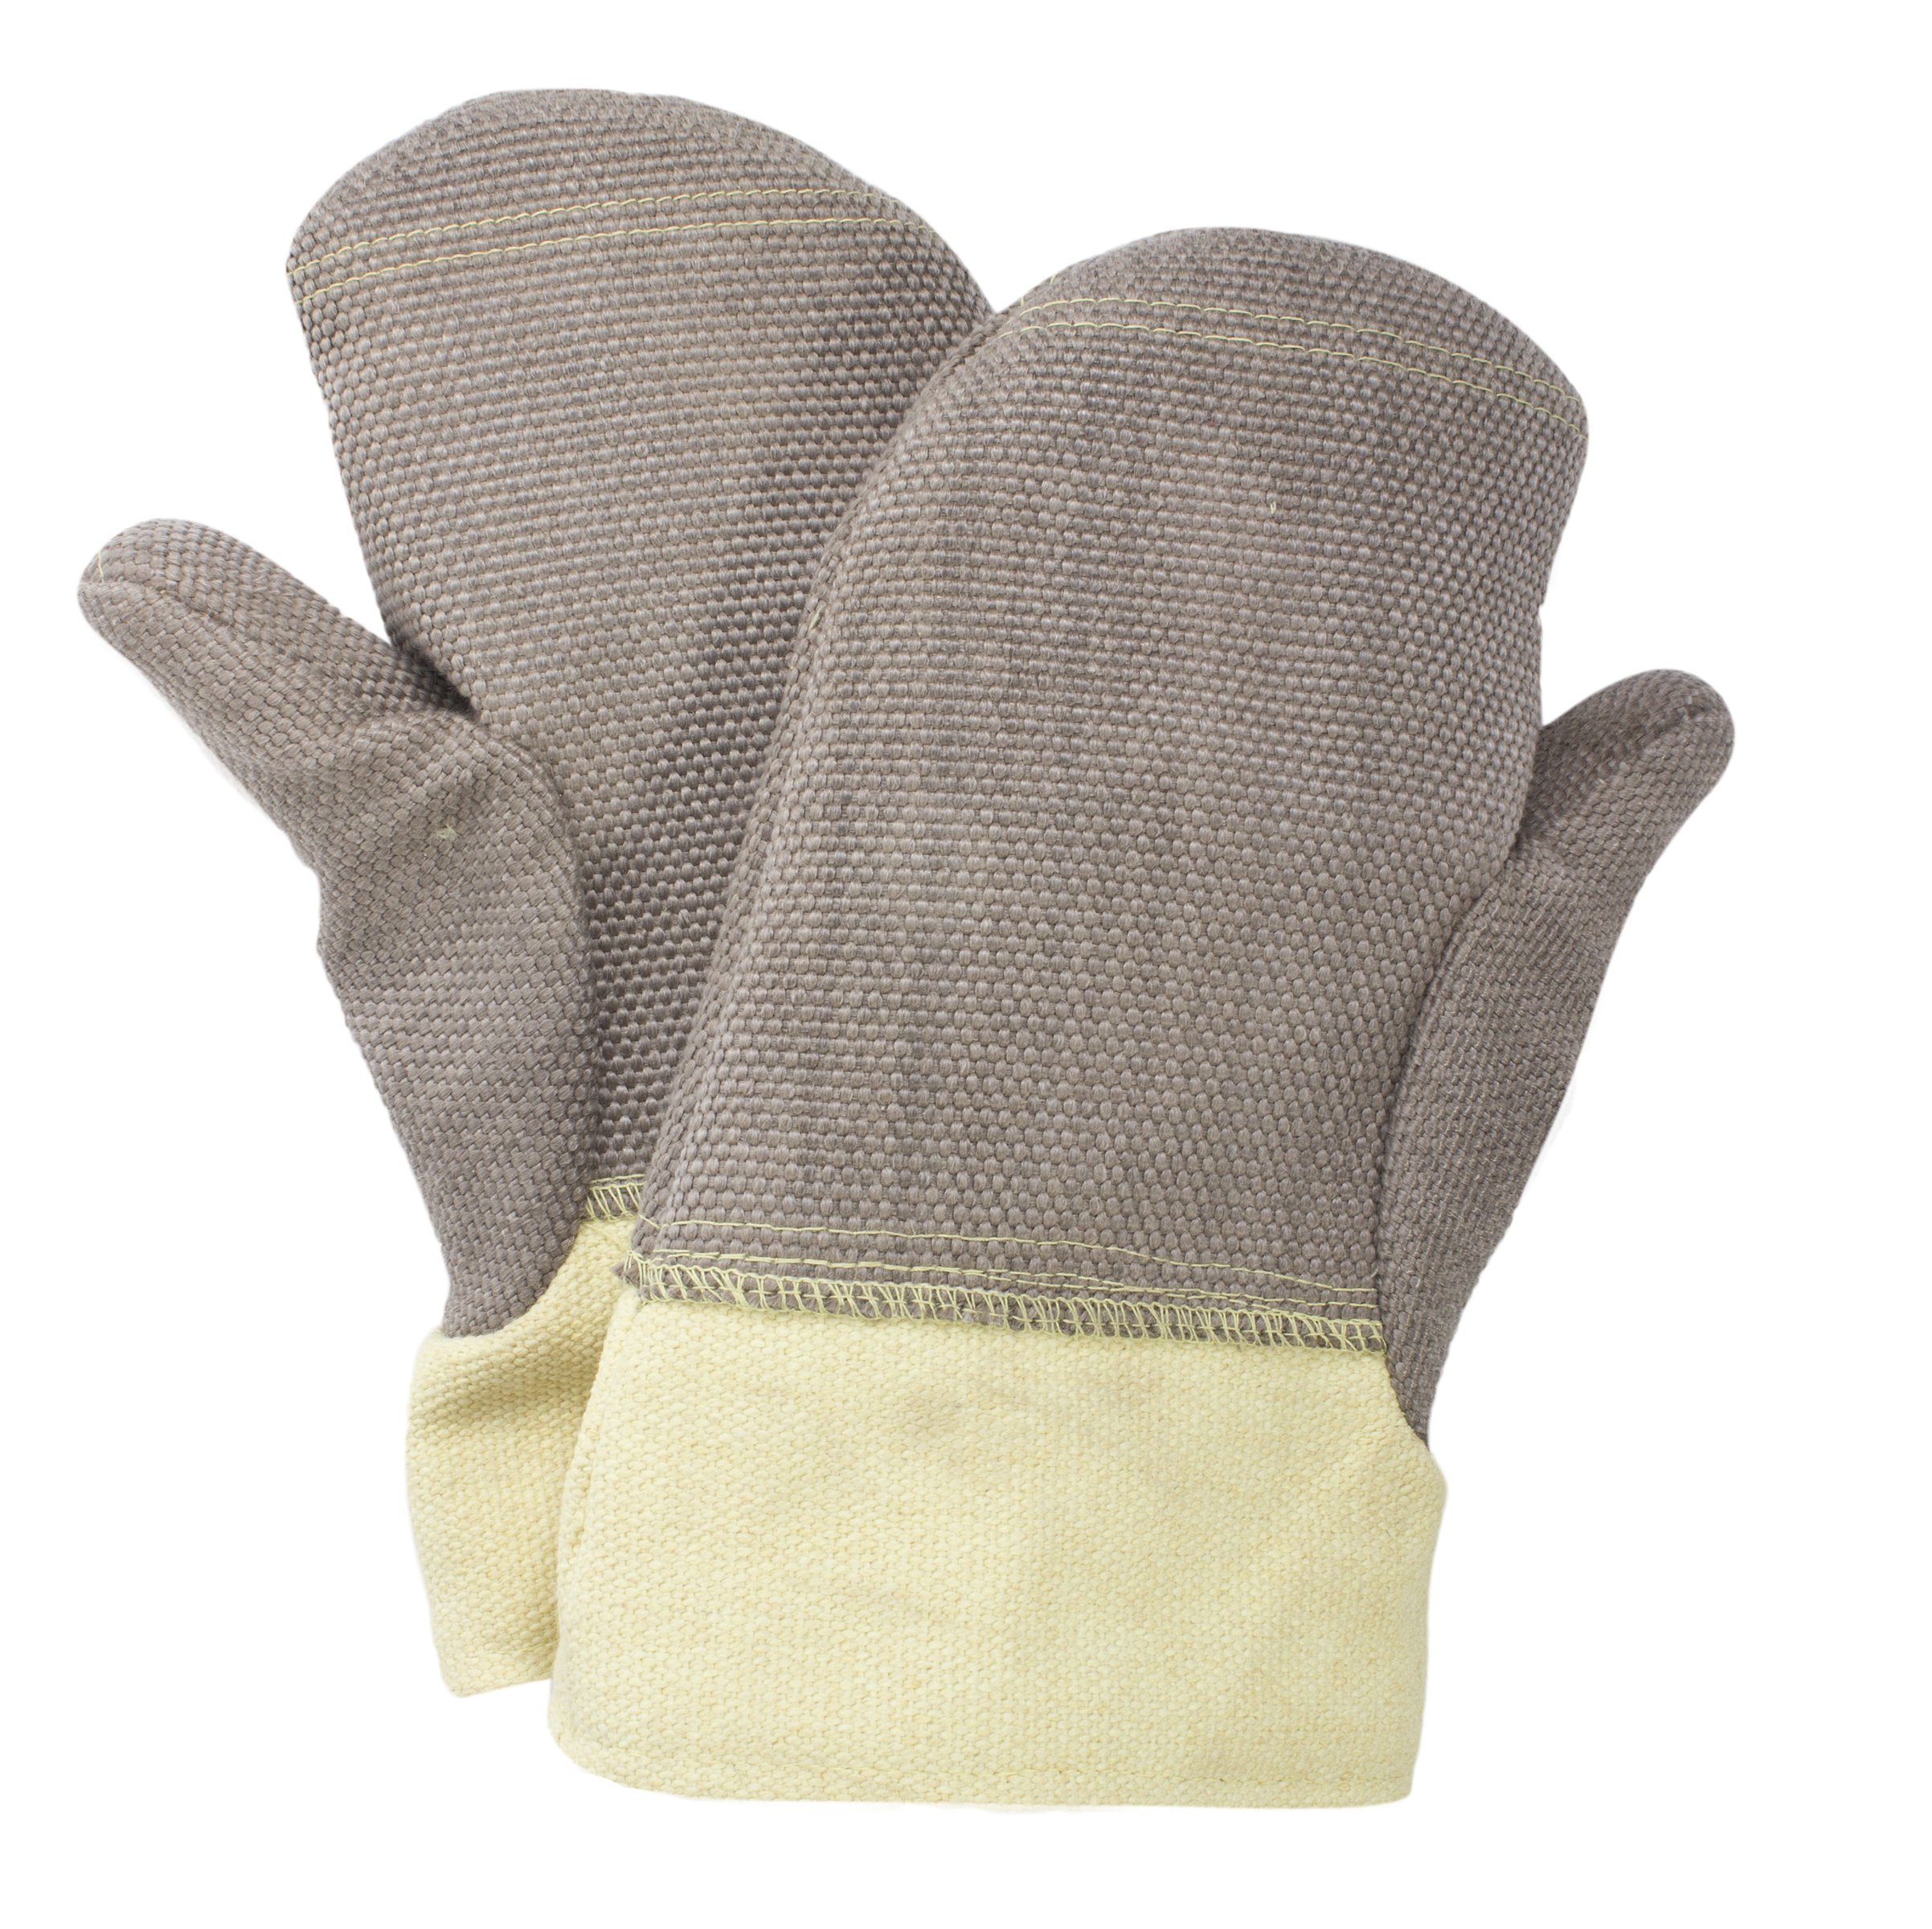 National Safety Apparel M60ZPRH01014 Zetex Plus Mitten with Thumb and Palm Patch, Jumbo, Brown